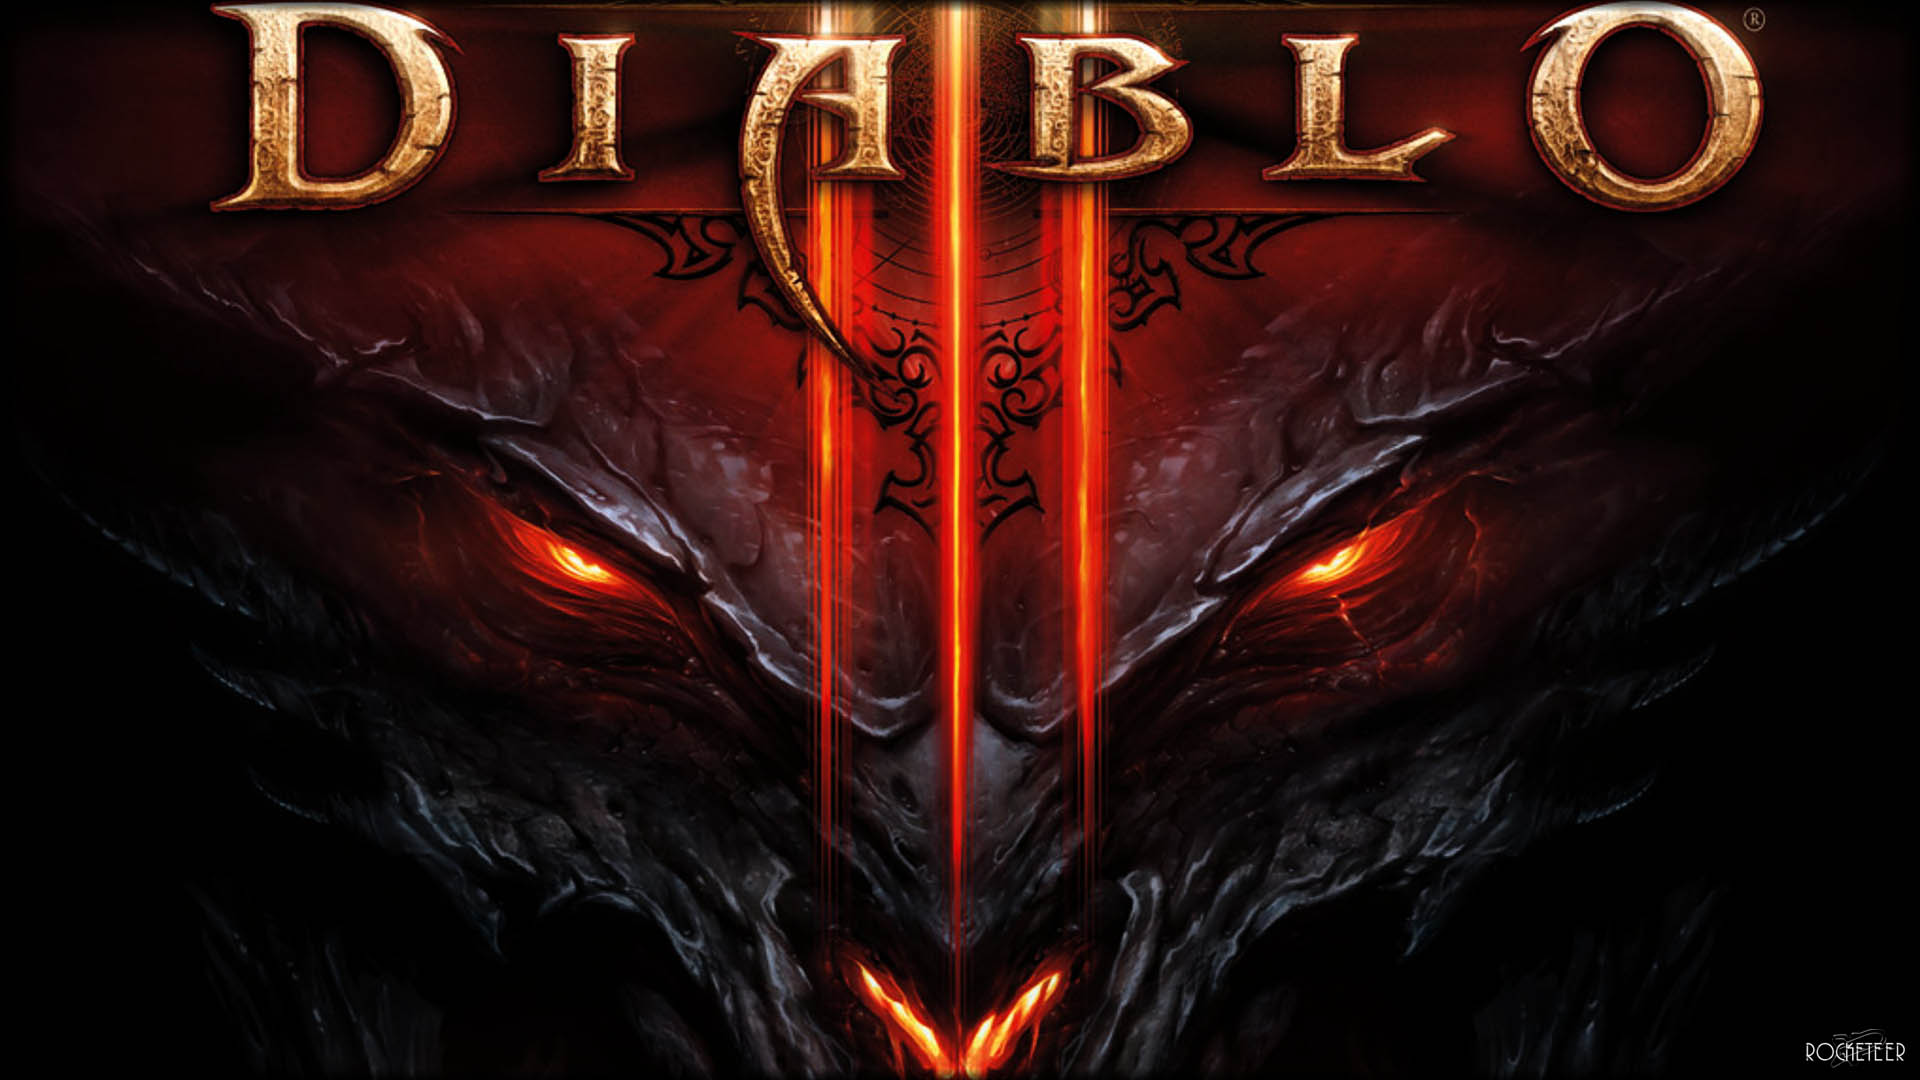 لعبة Diablo Blizzard entertainment